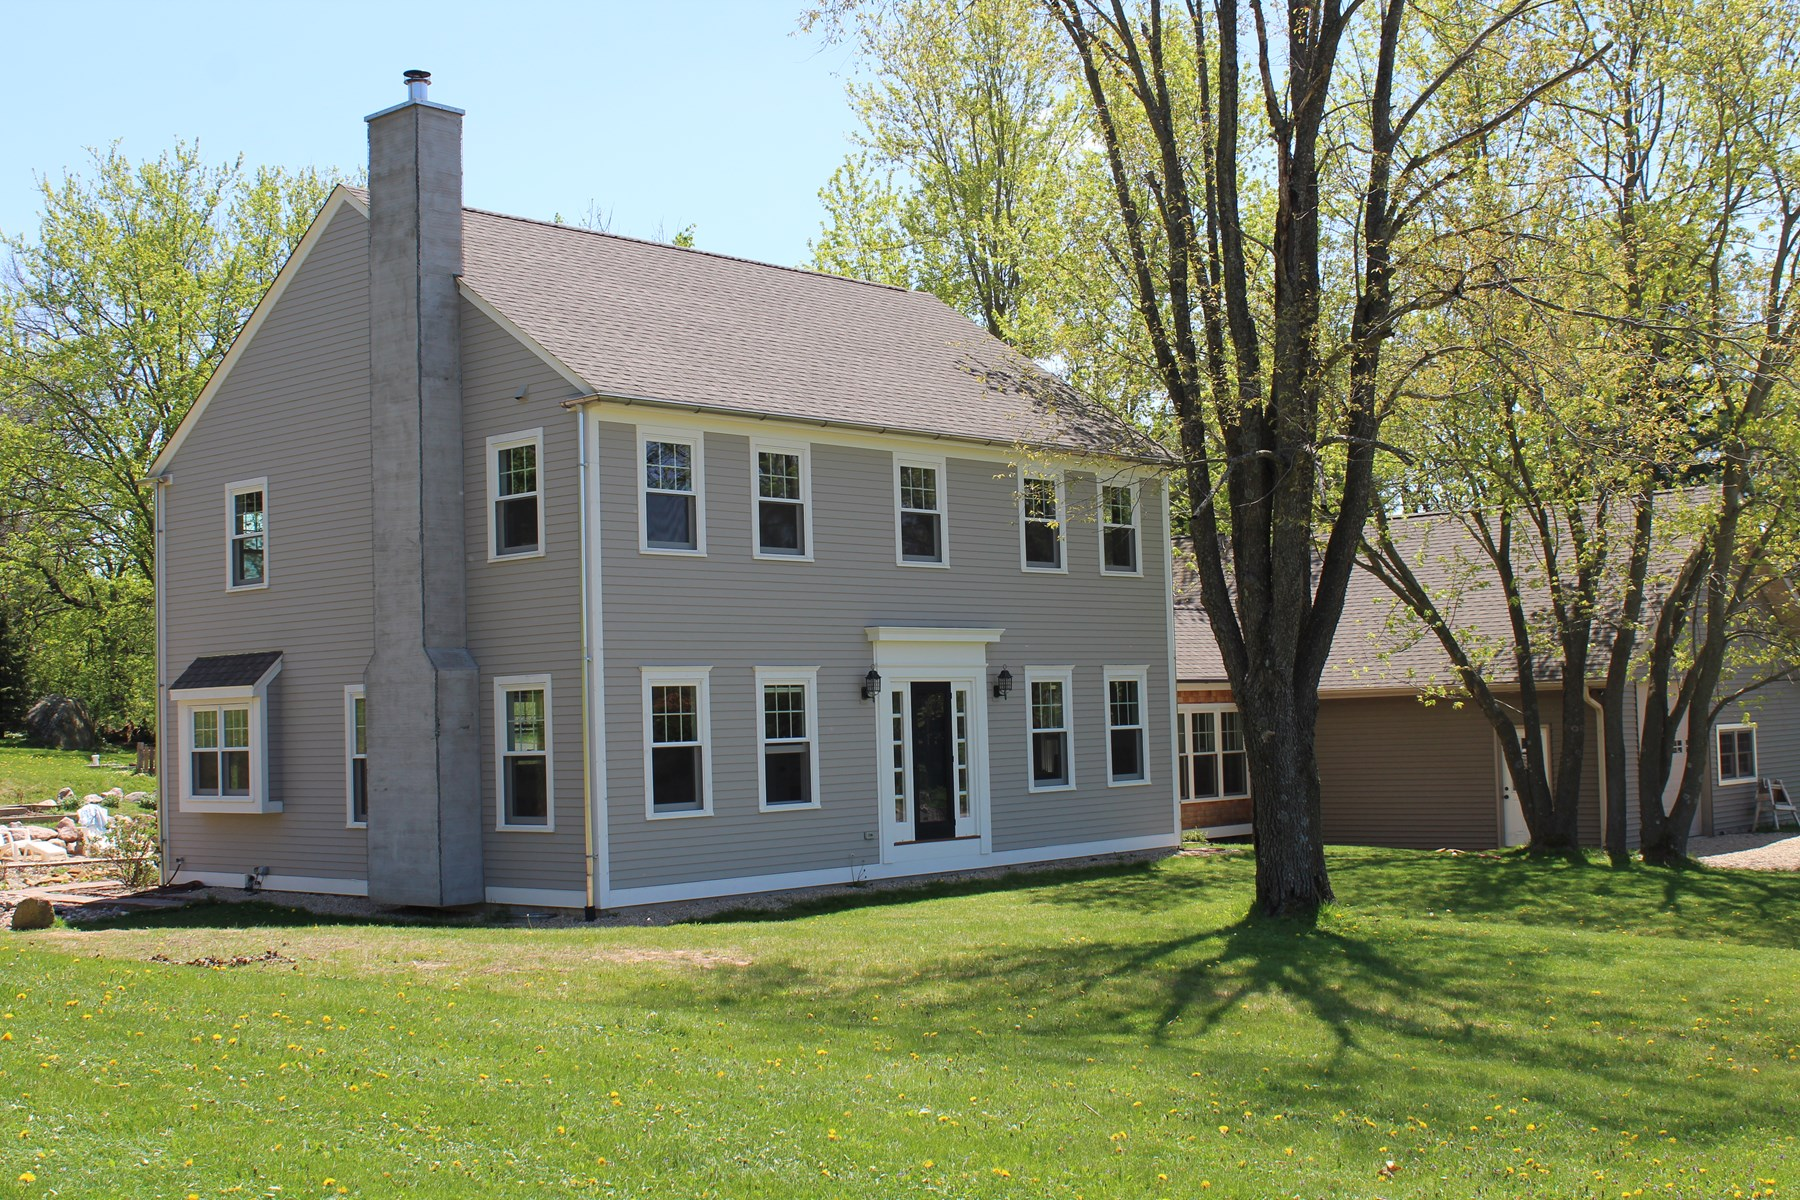 JUST SOLD! ~ New Old Farmhouse for sale in Viroqua WI